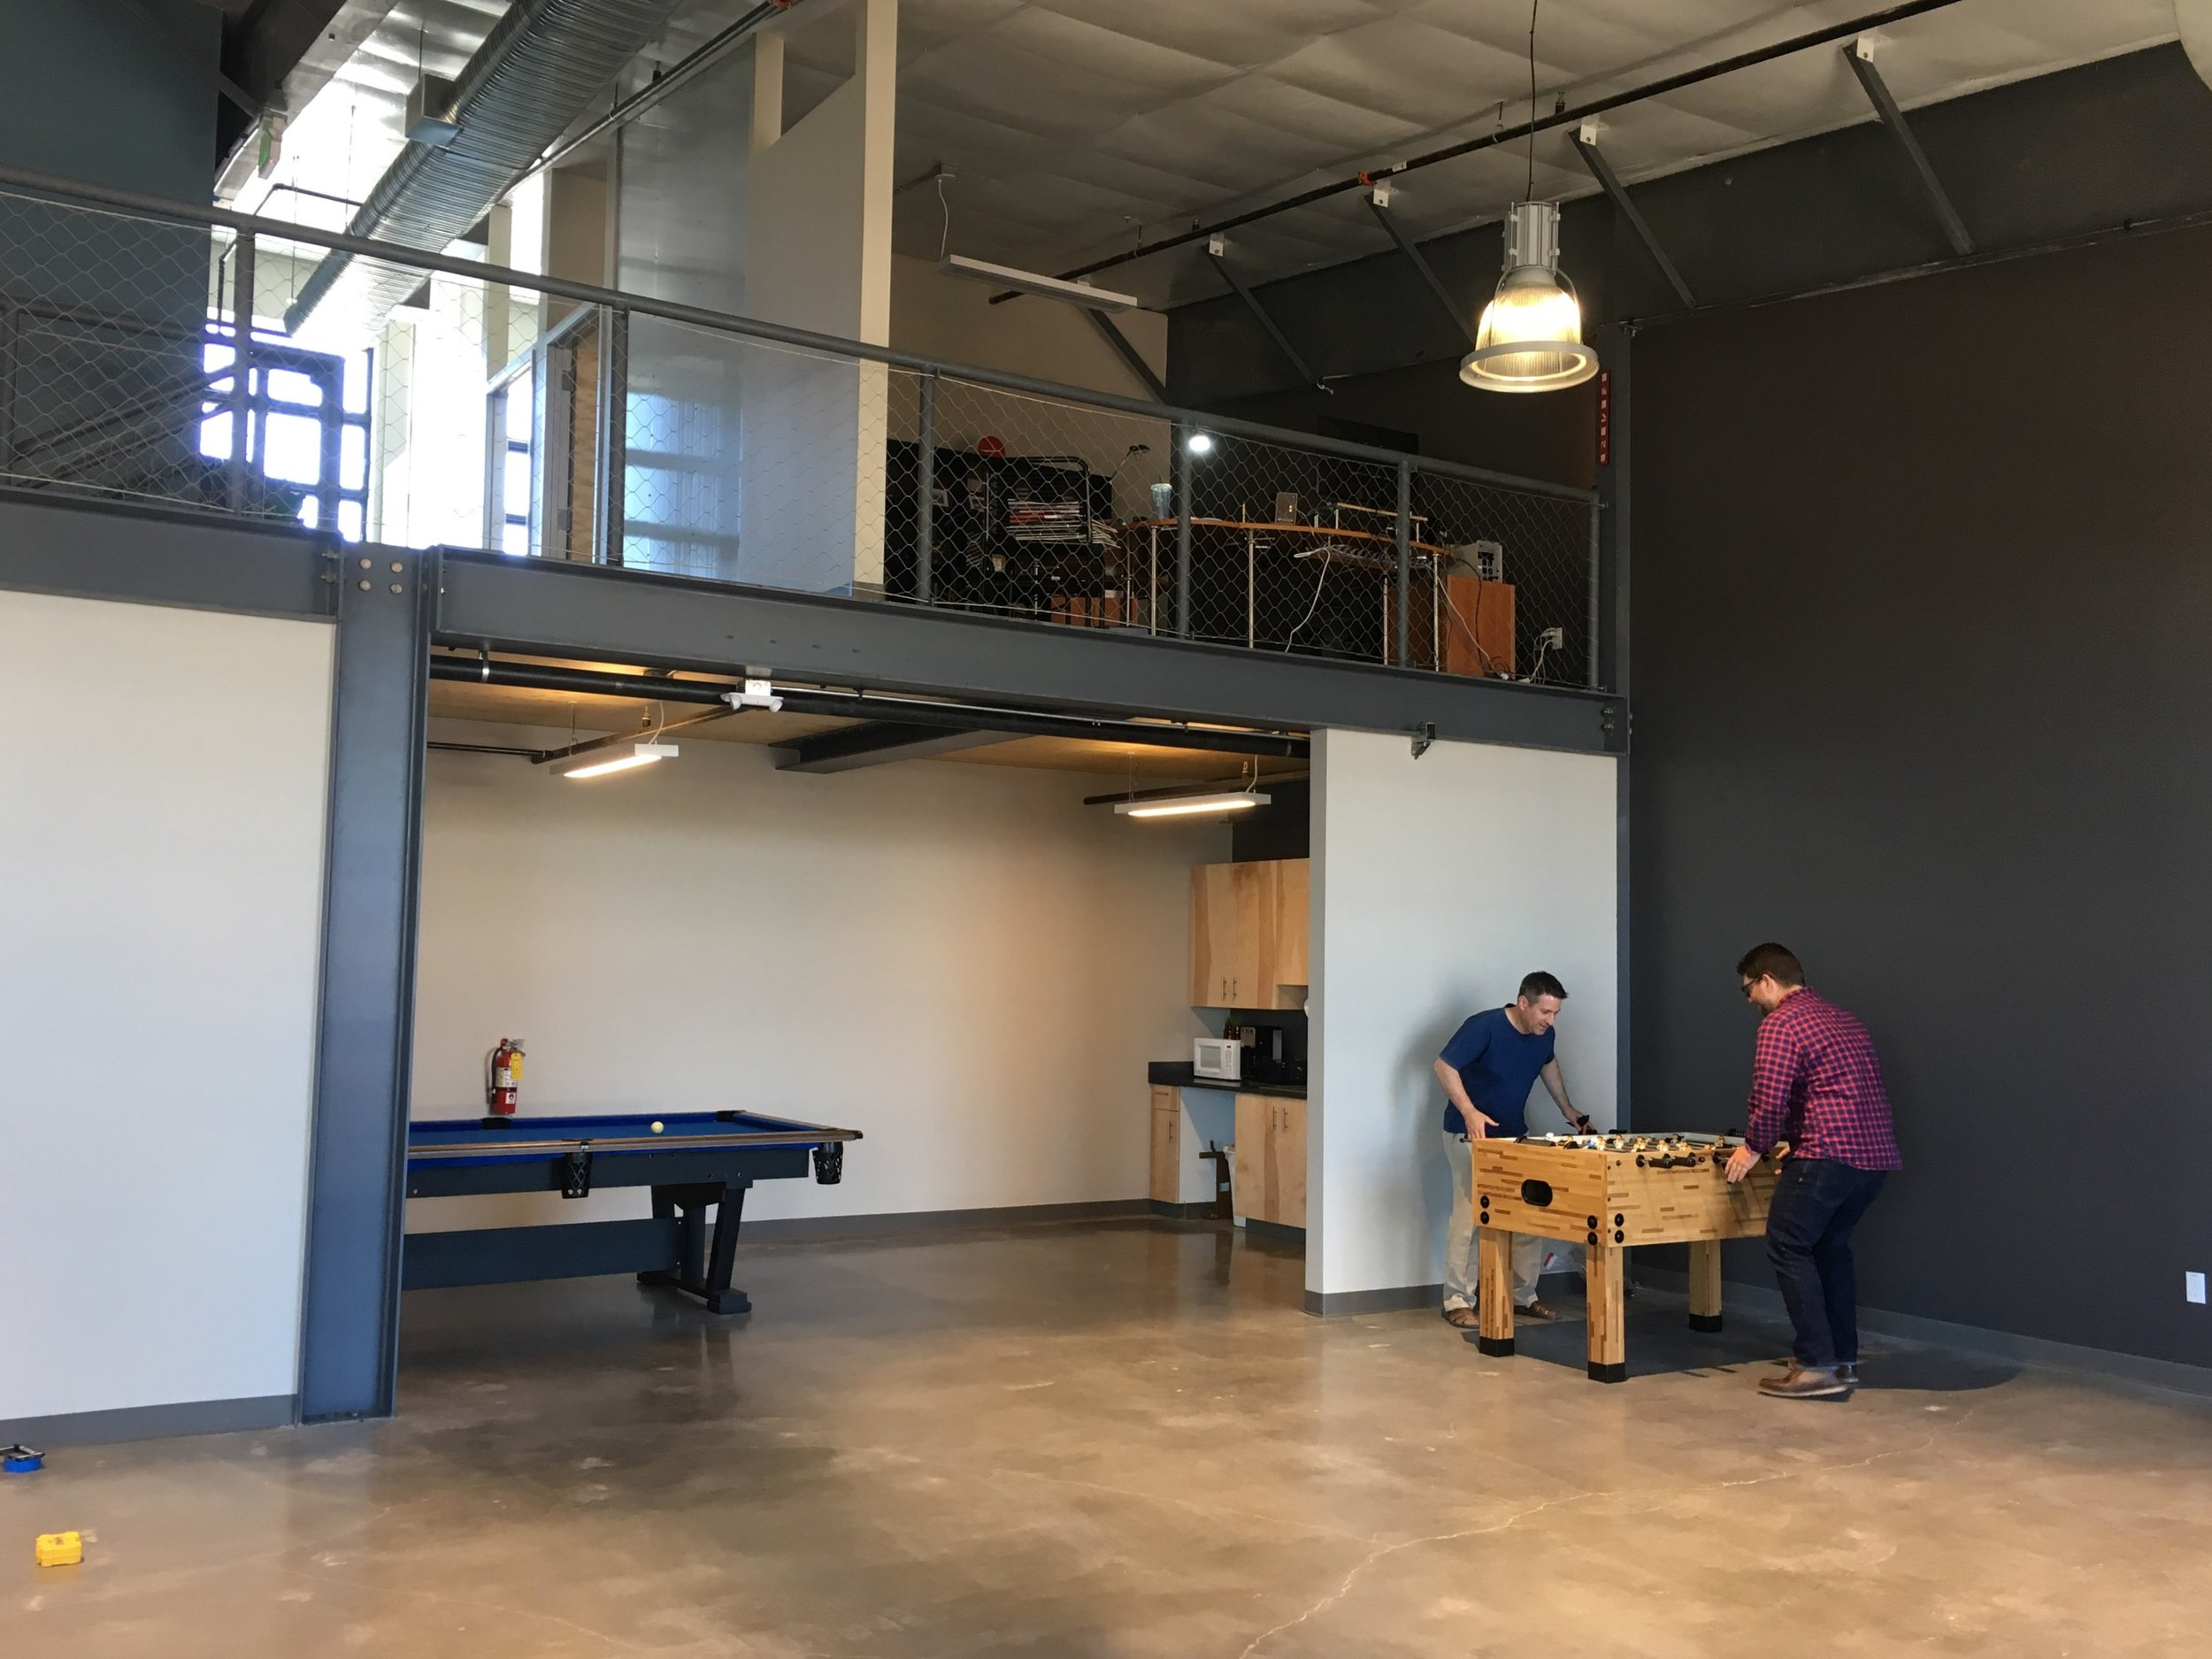 Architects at a foosball table.